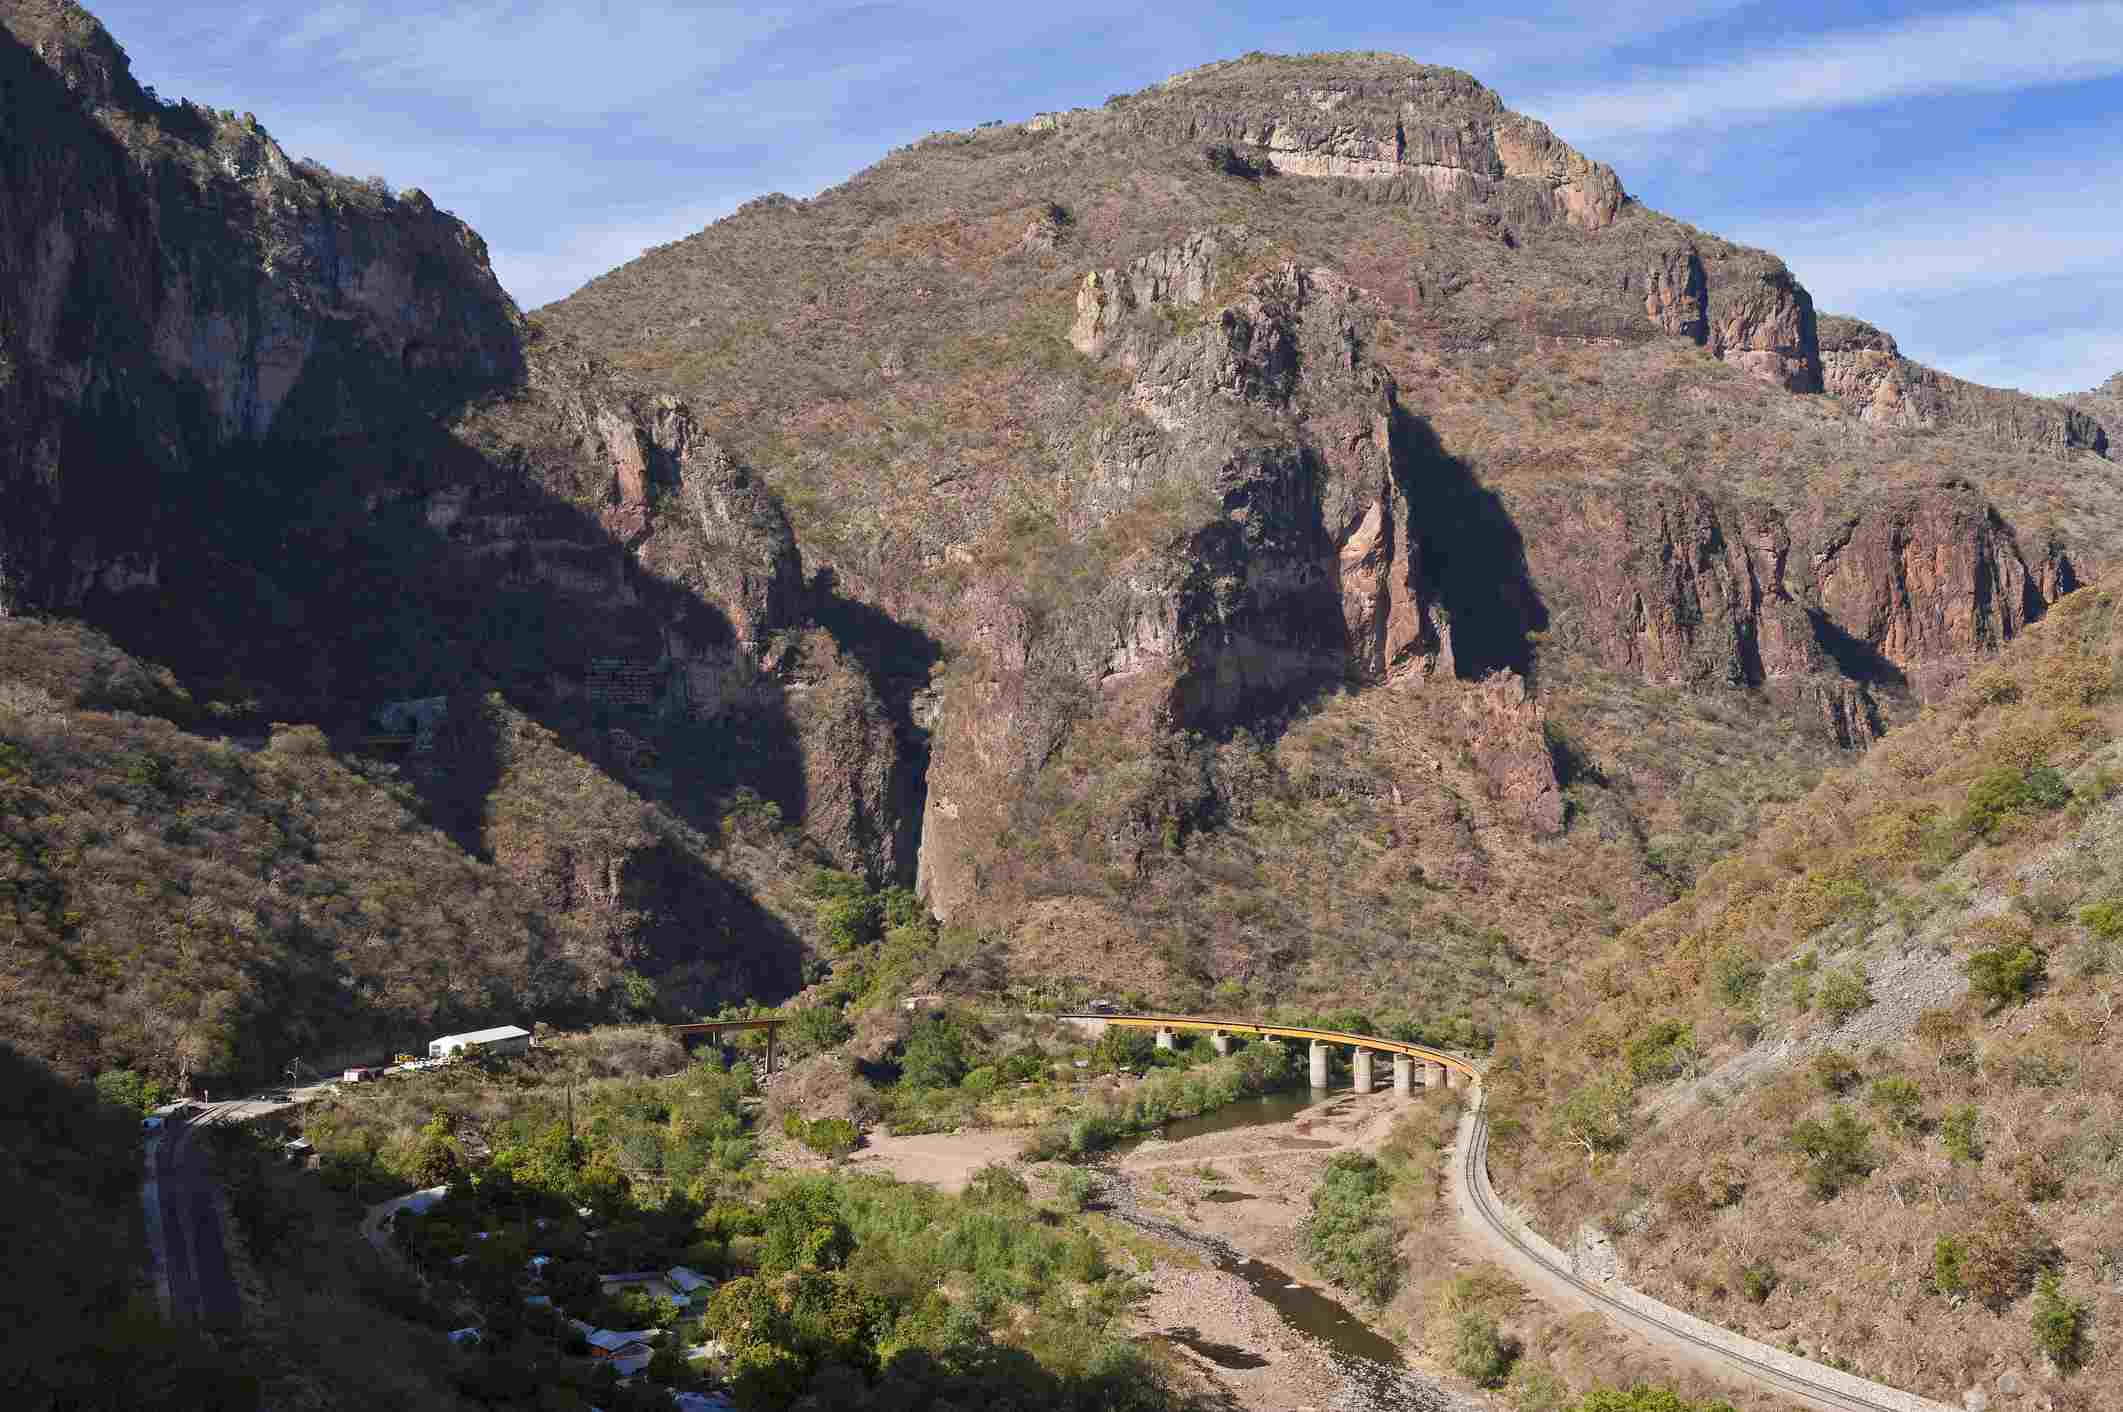 Mexico, Chihuahua State, Barranca del Cobre (Copper Canyon), the railway line (El Chepe) from Los Mochis to Chihuahua